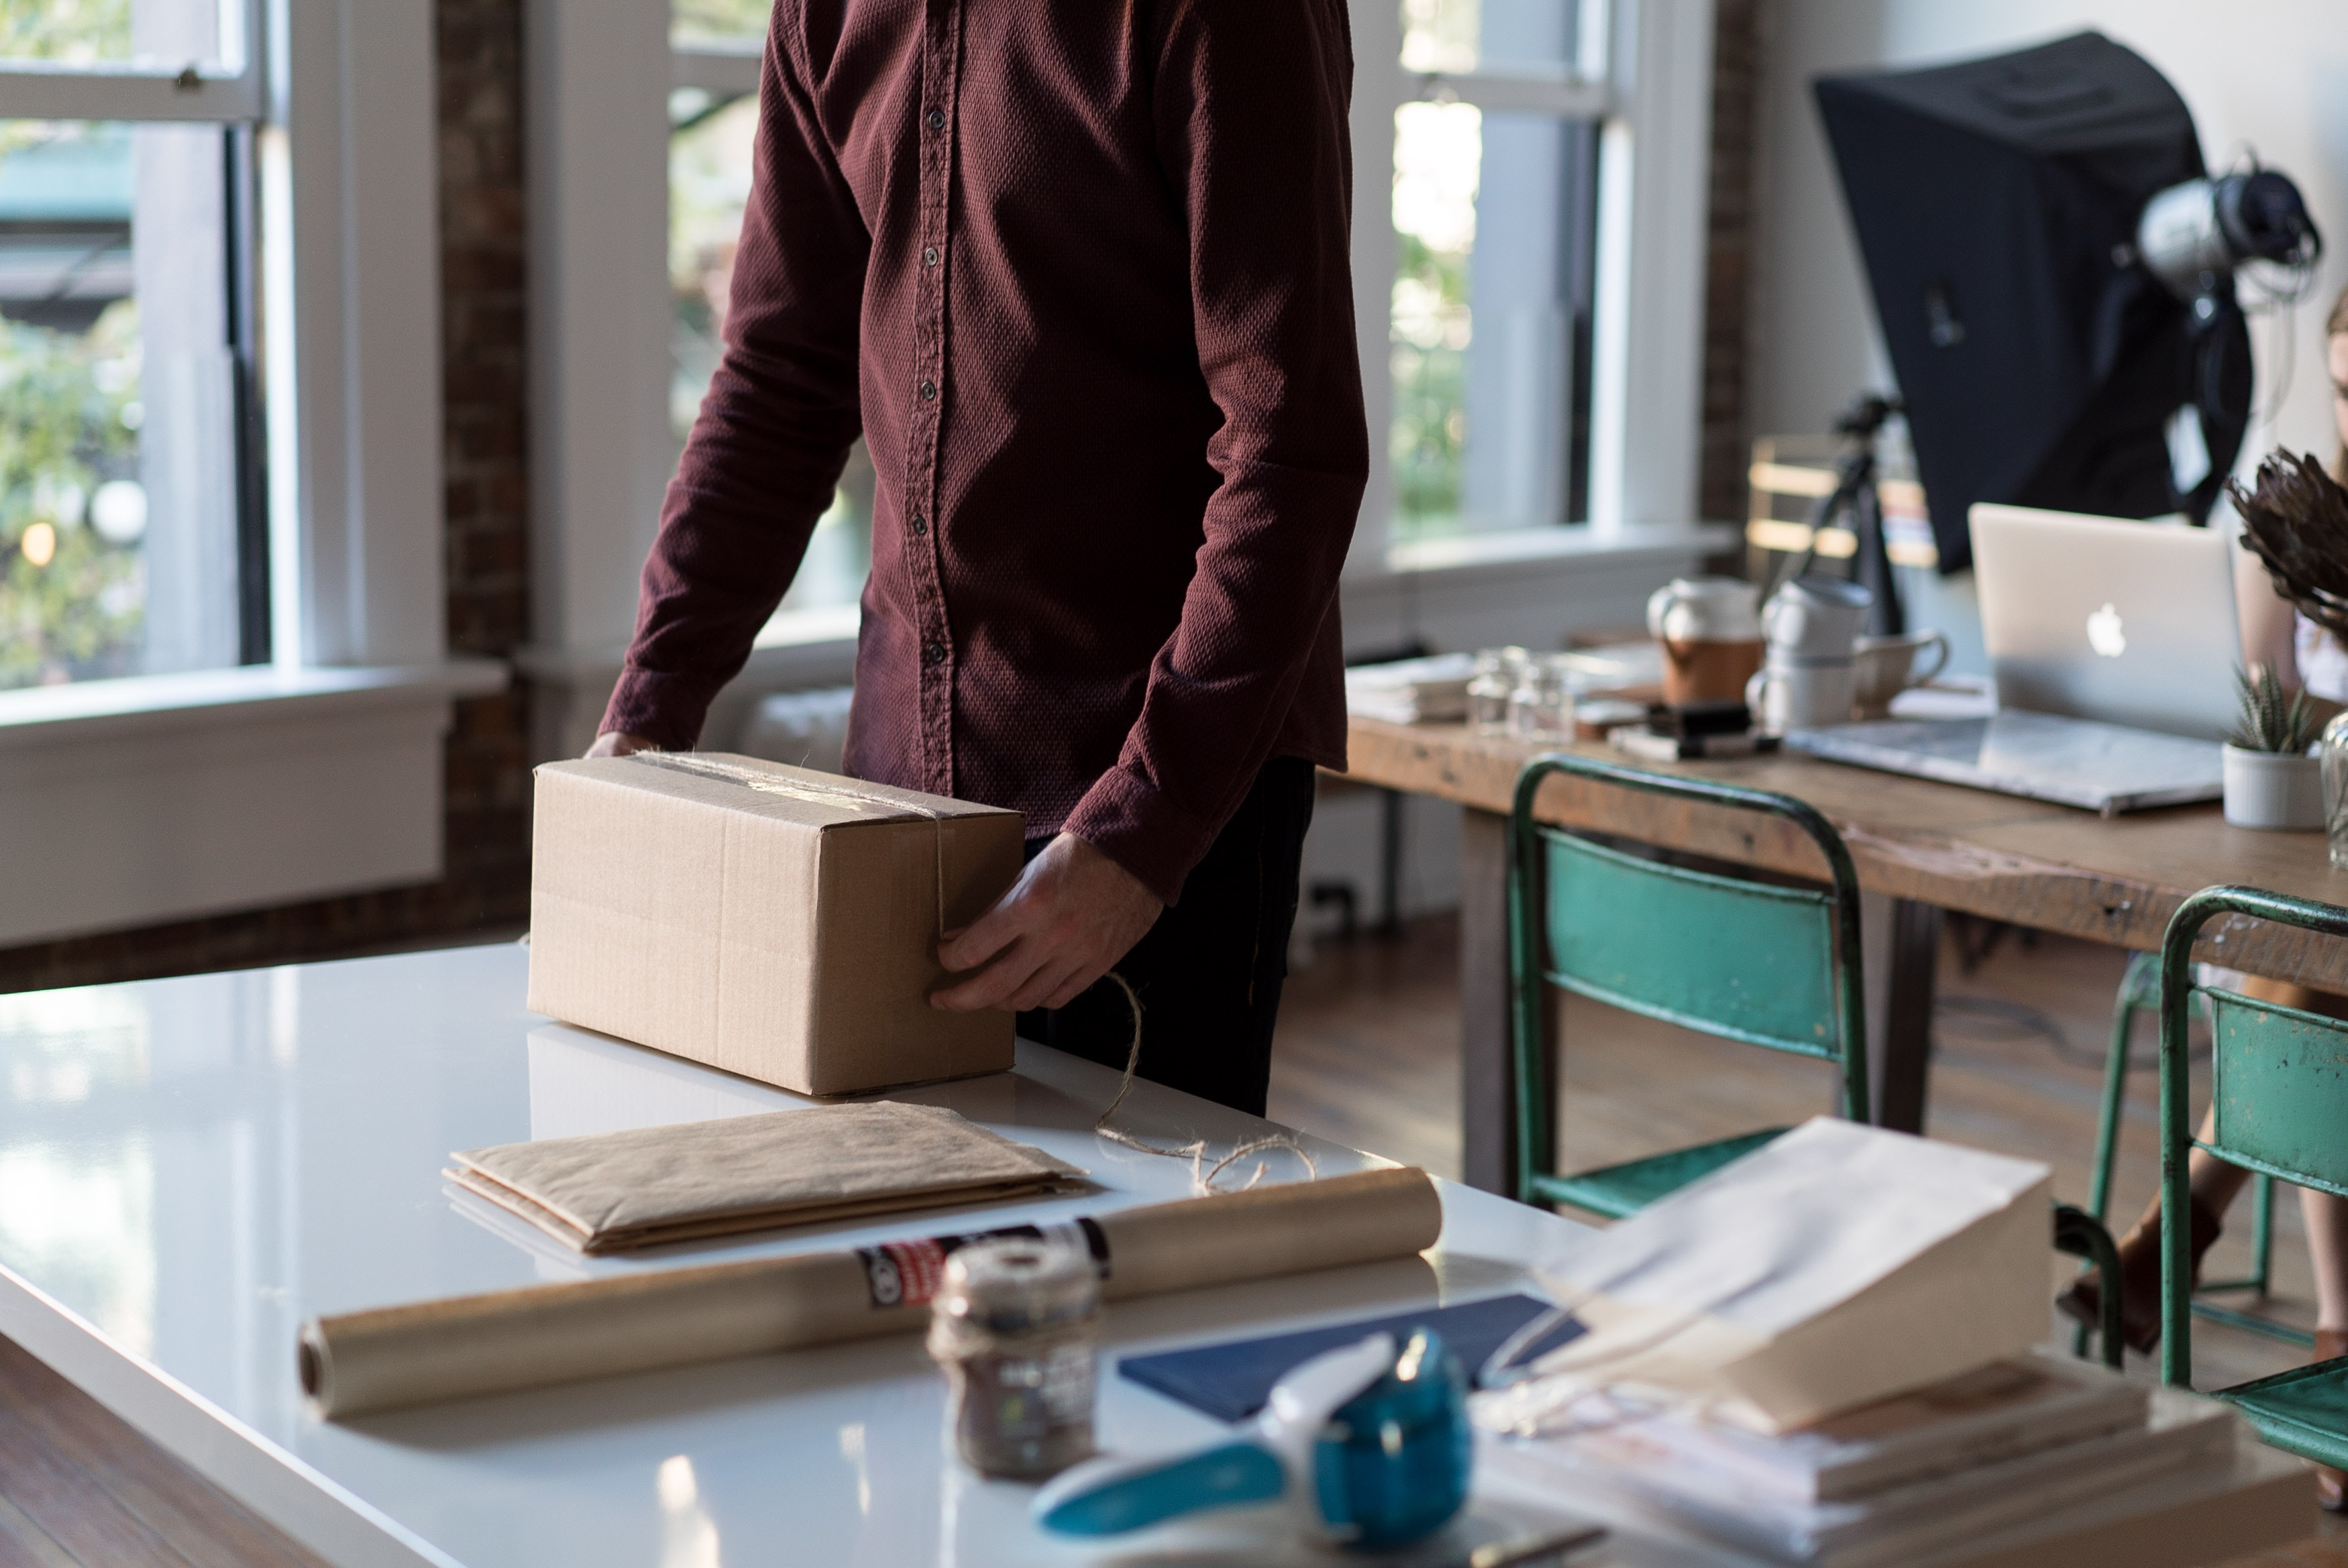 A man packing a cardboard box in a small office